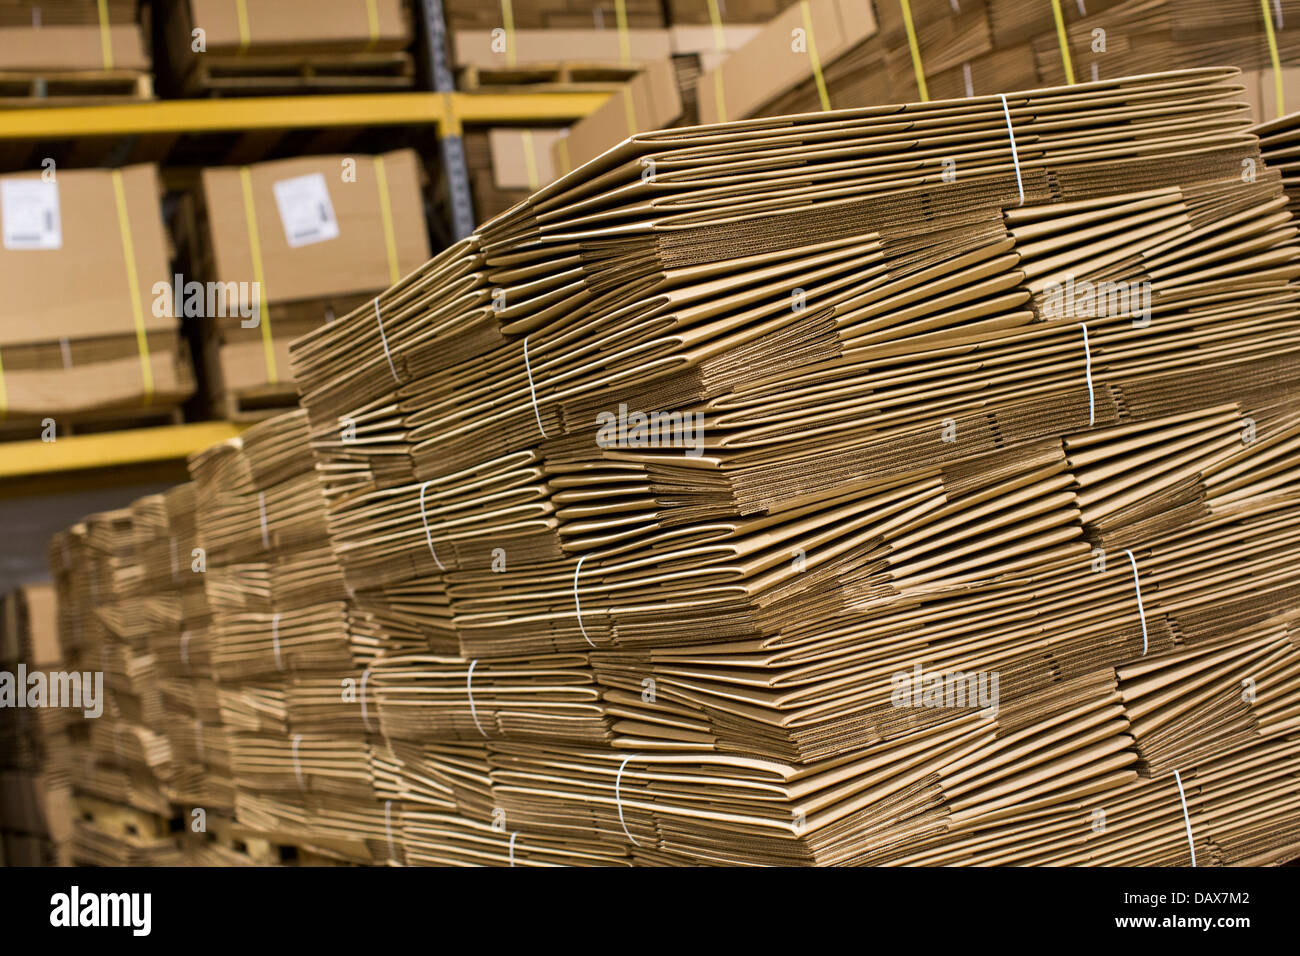 An industrial warehouse full of cardboard boxes on shelving.  - Stock Image